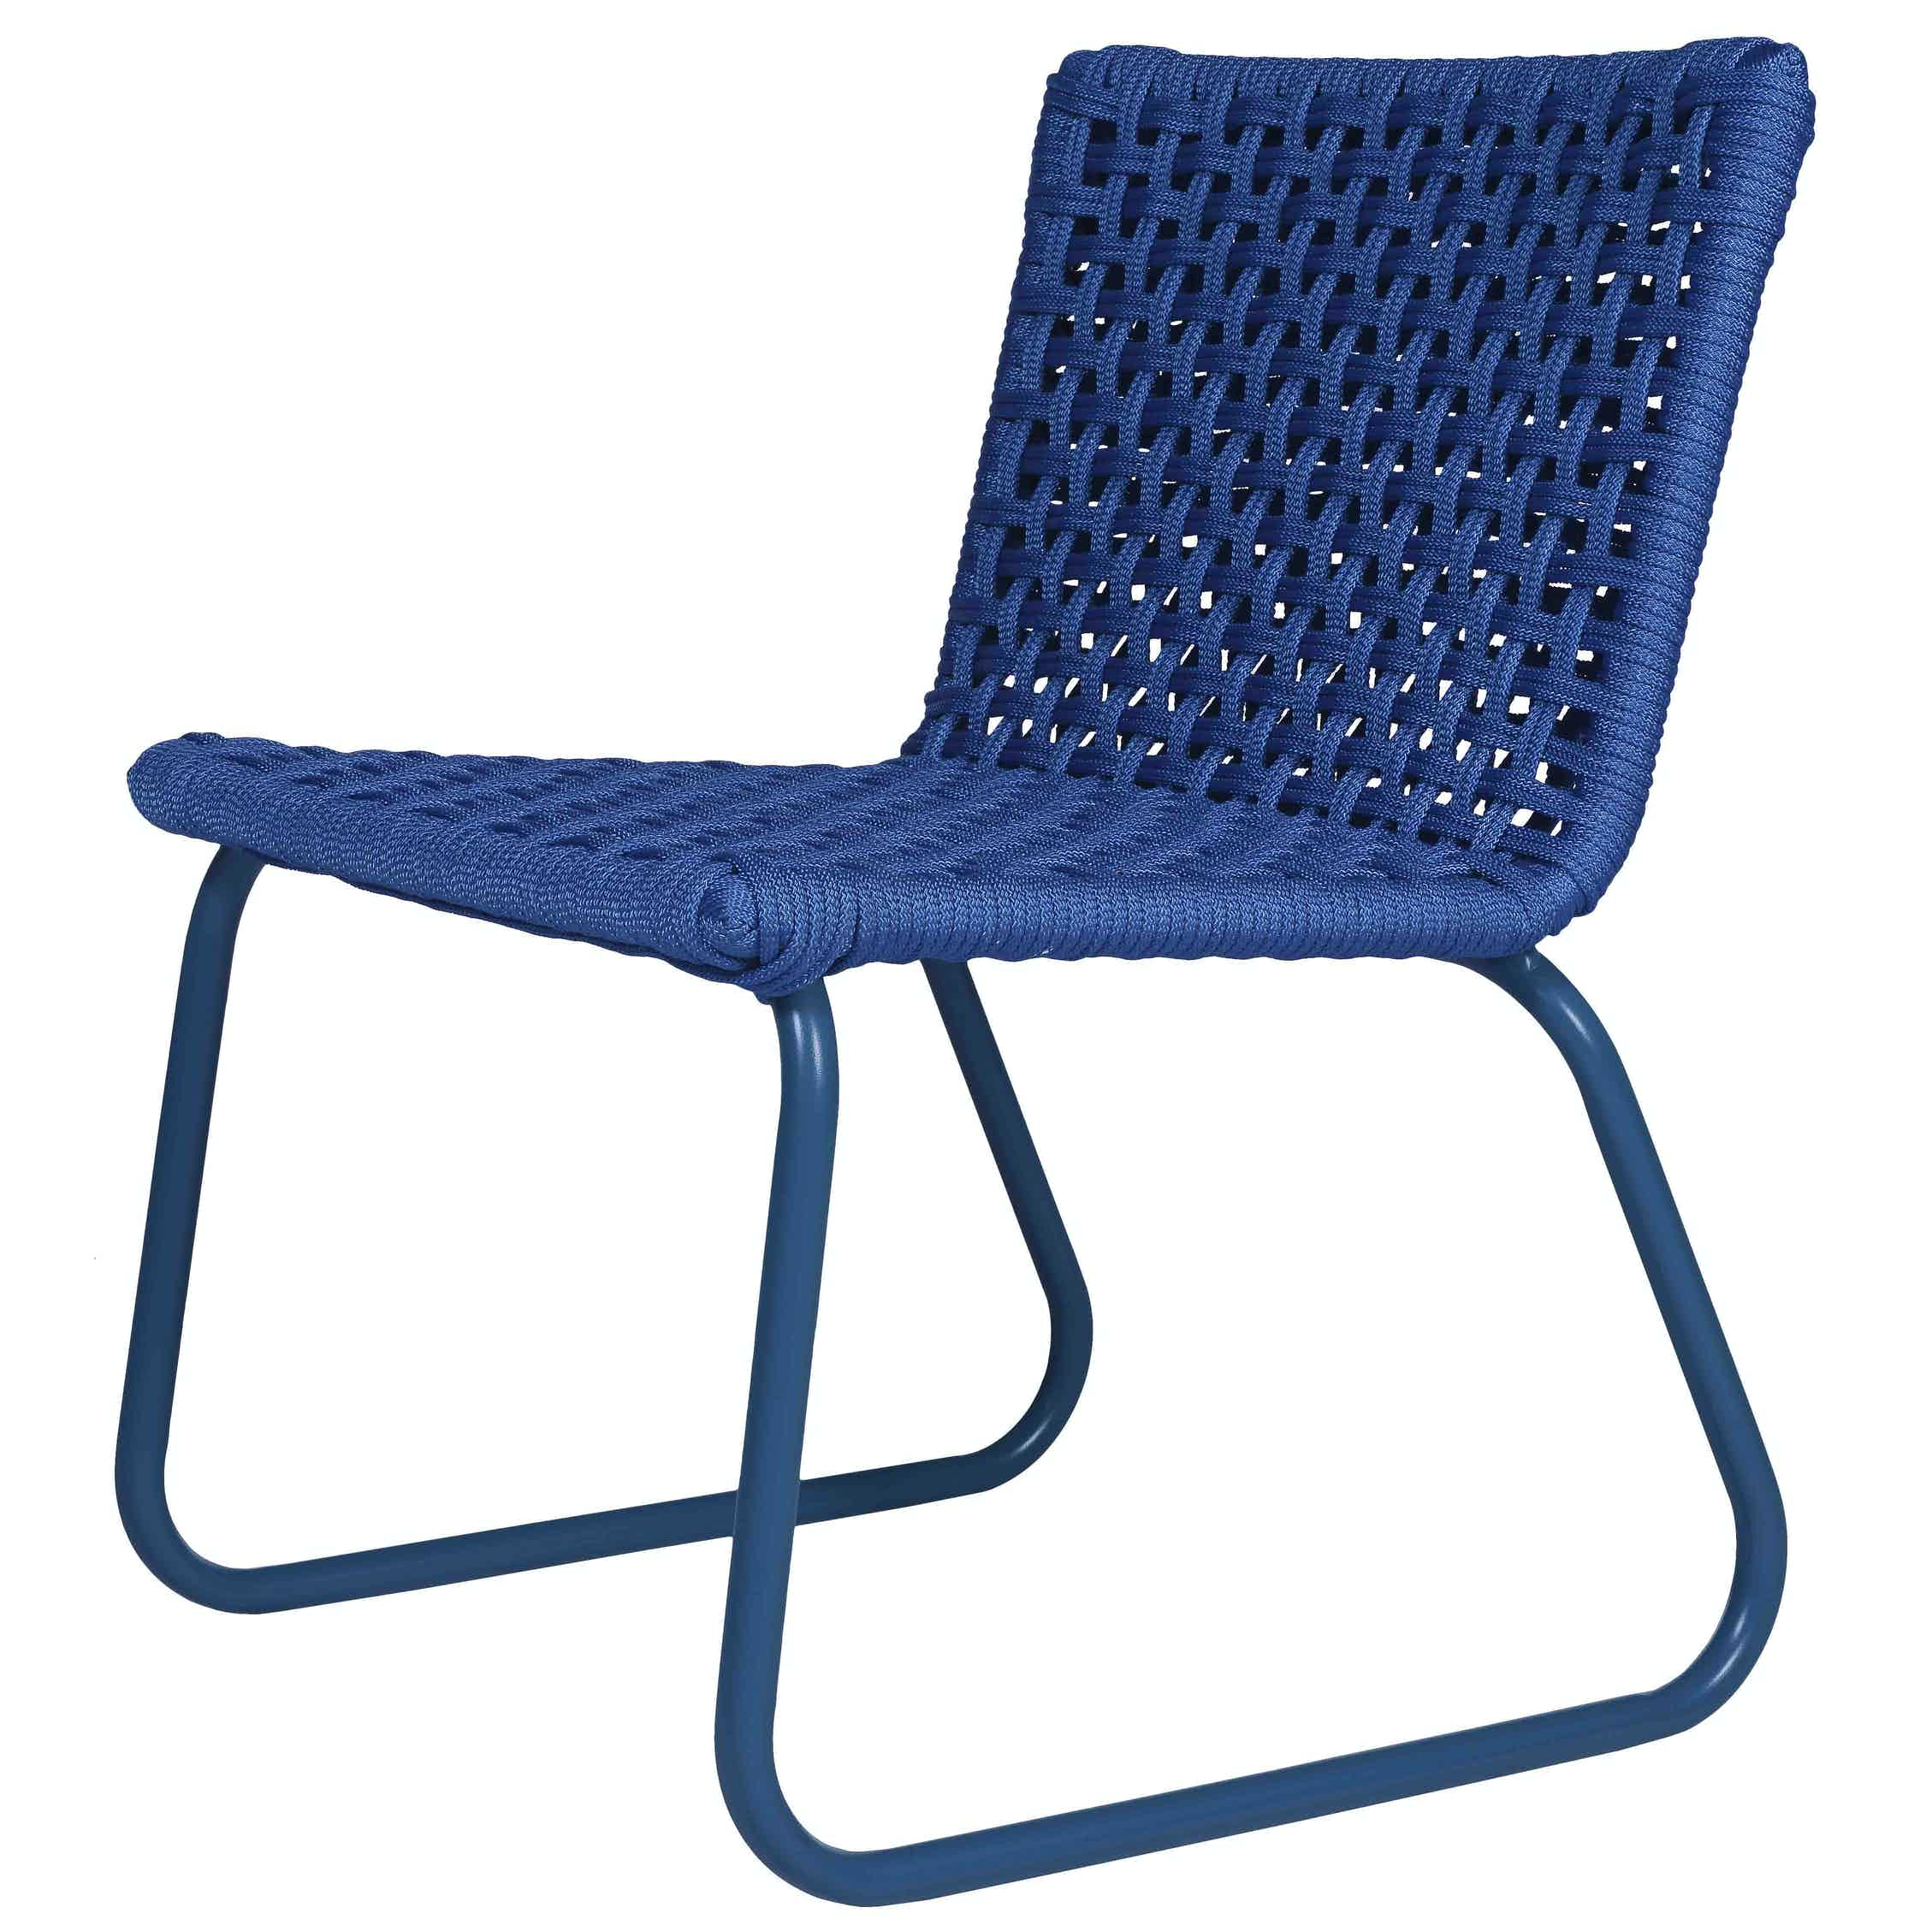 Tidelli marina chair thumbnail haute living